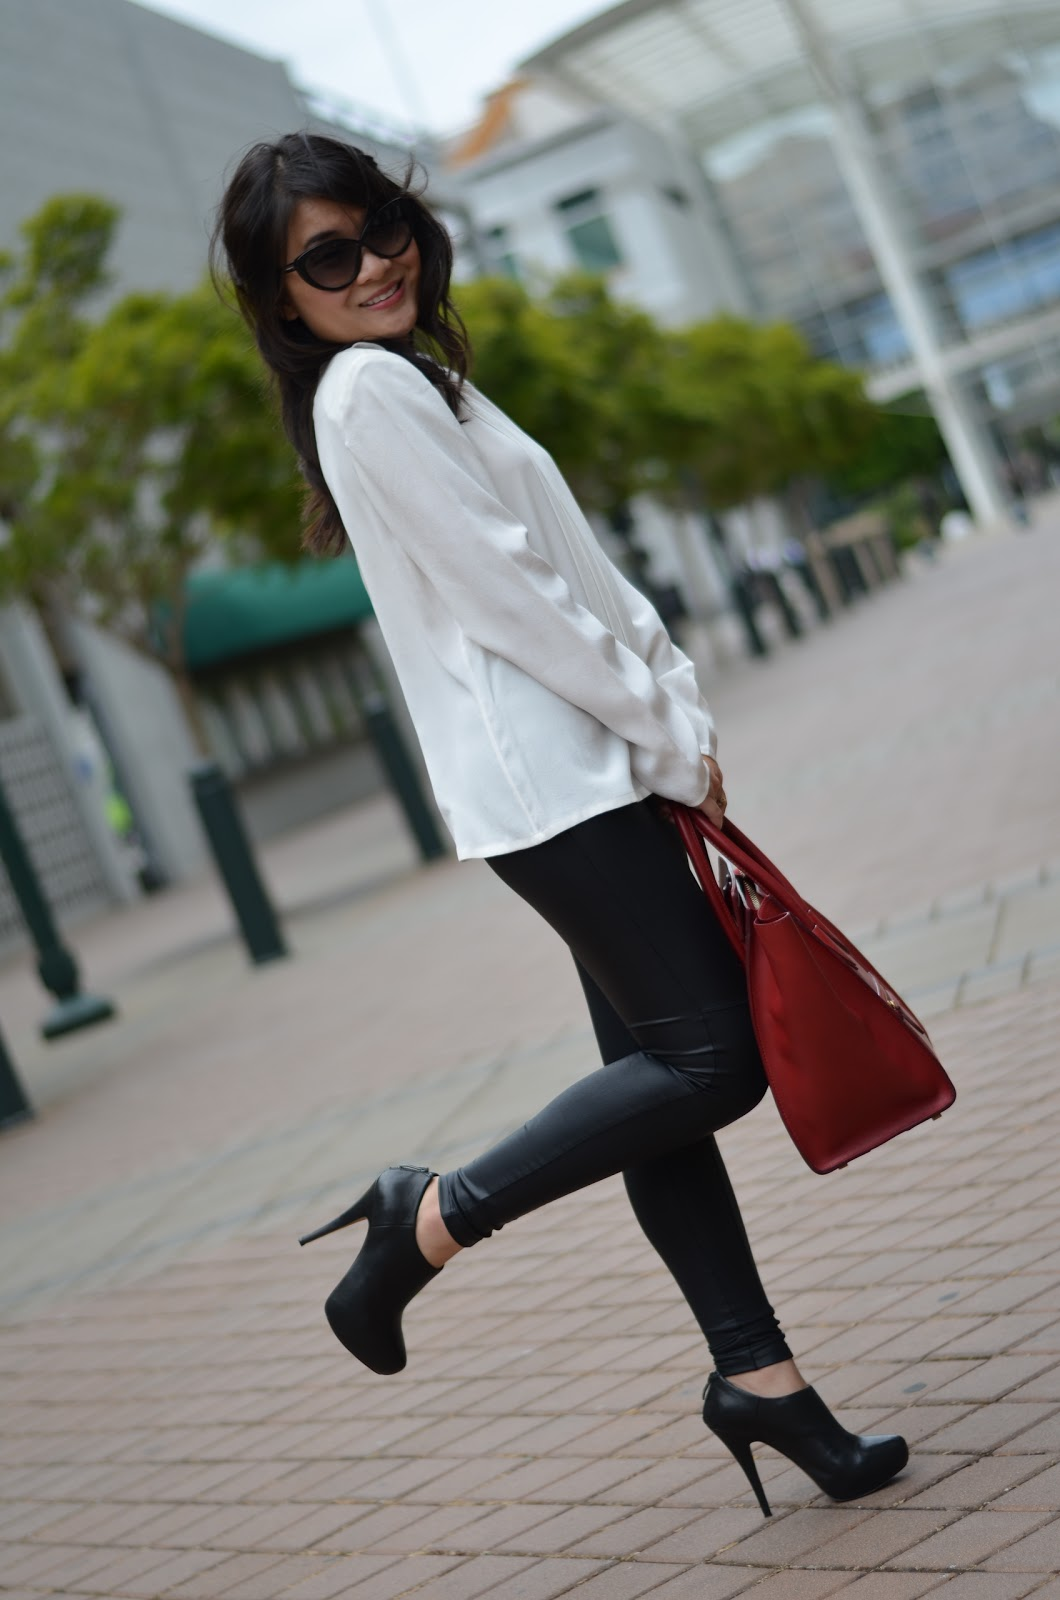 leith, leith white silk blouse, leith silk blouse, tom ford sunglasses, tom ford, tom ford madison, tom ford cat eye, hm, hm faux leather leggings, celine luggage tote, celine mini luggage tote, vince camuto jerrell, vince camuto black booties, black vince camuto, vince camuto